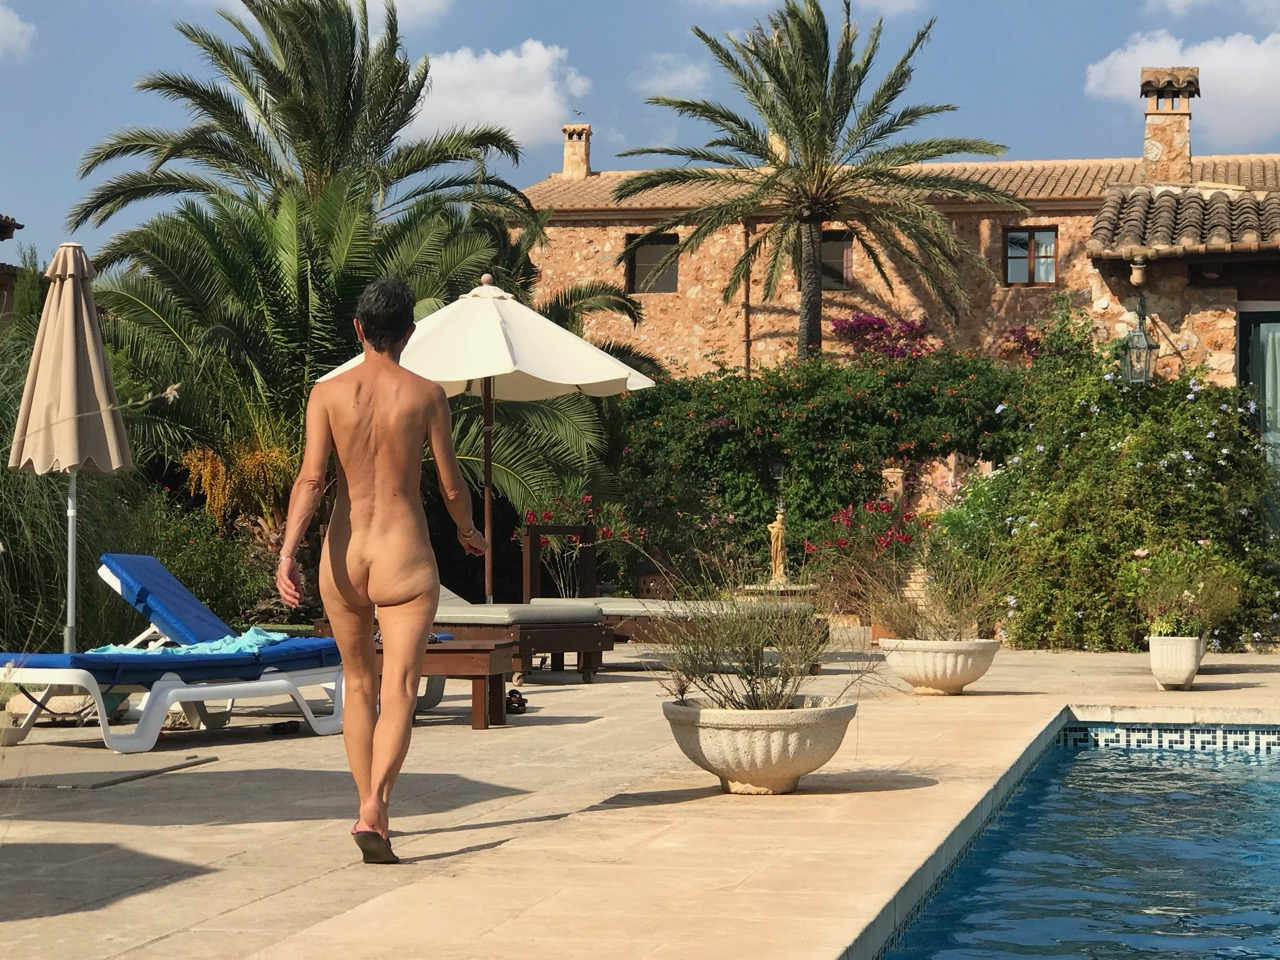 WANDERING WEDNESDAY: Skinny Dippers Naturist Retreat